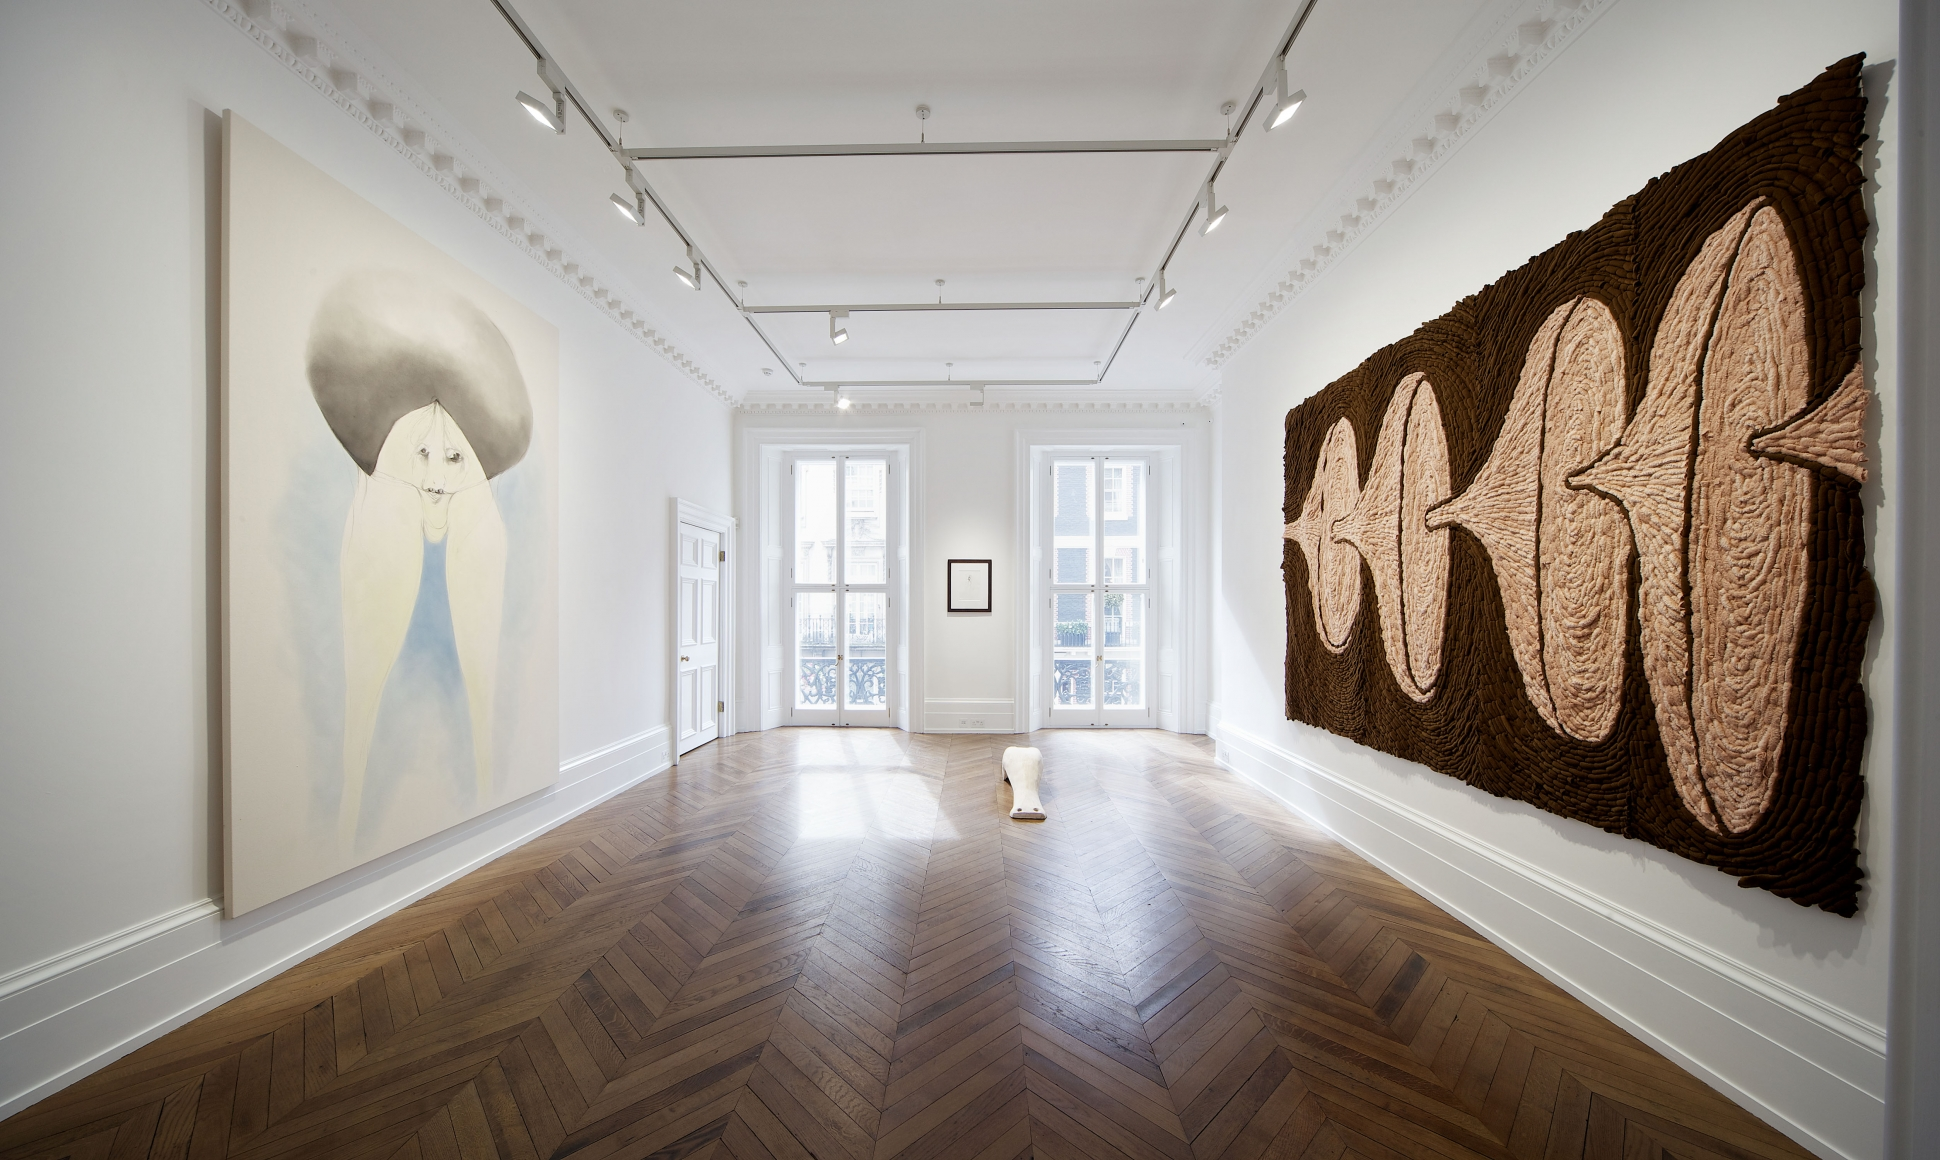 ENRICO DAVID New Works 17 September through 16 November 2013 MAYFAIR, LONDON, Installation View 1